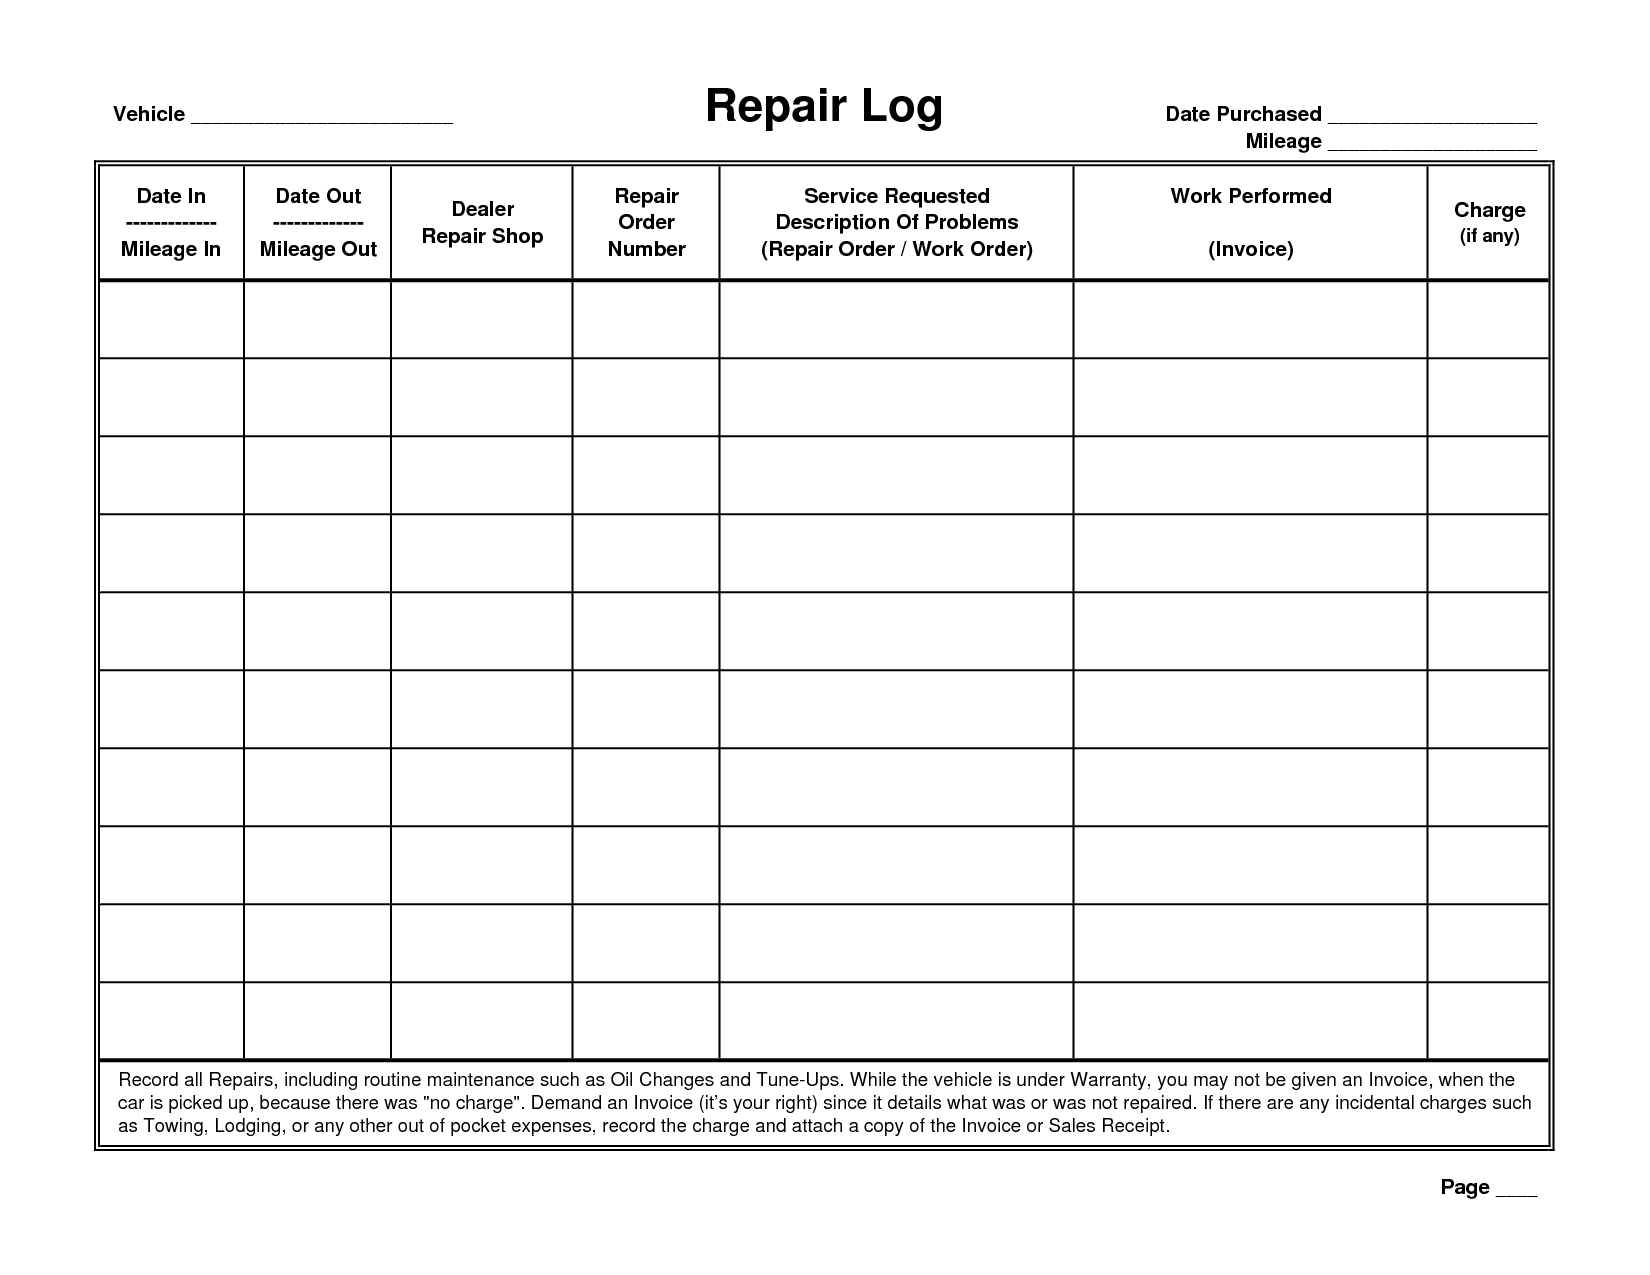 5 Best Images of Printable Vehicle Maintenance Logs Sheets ...